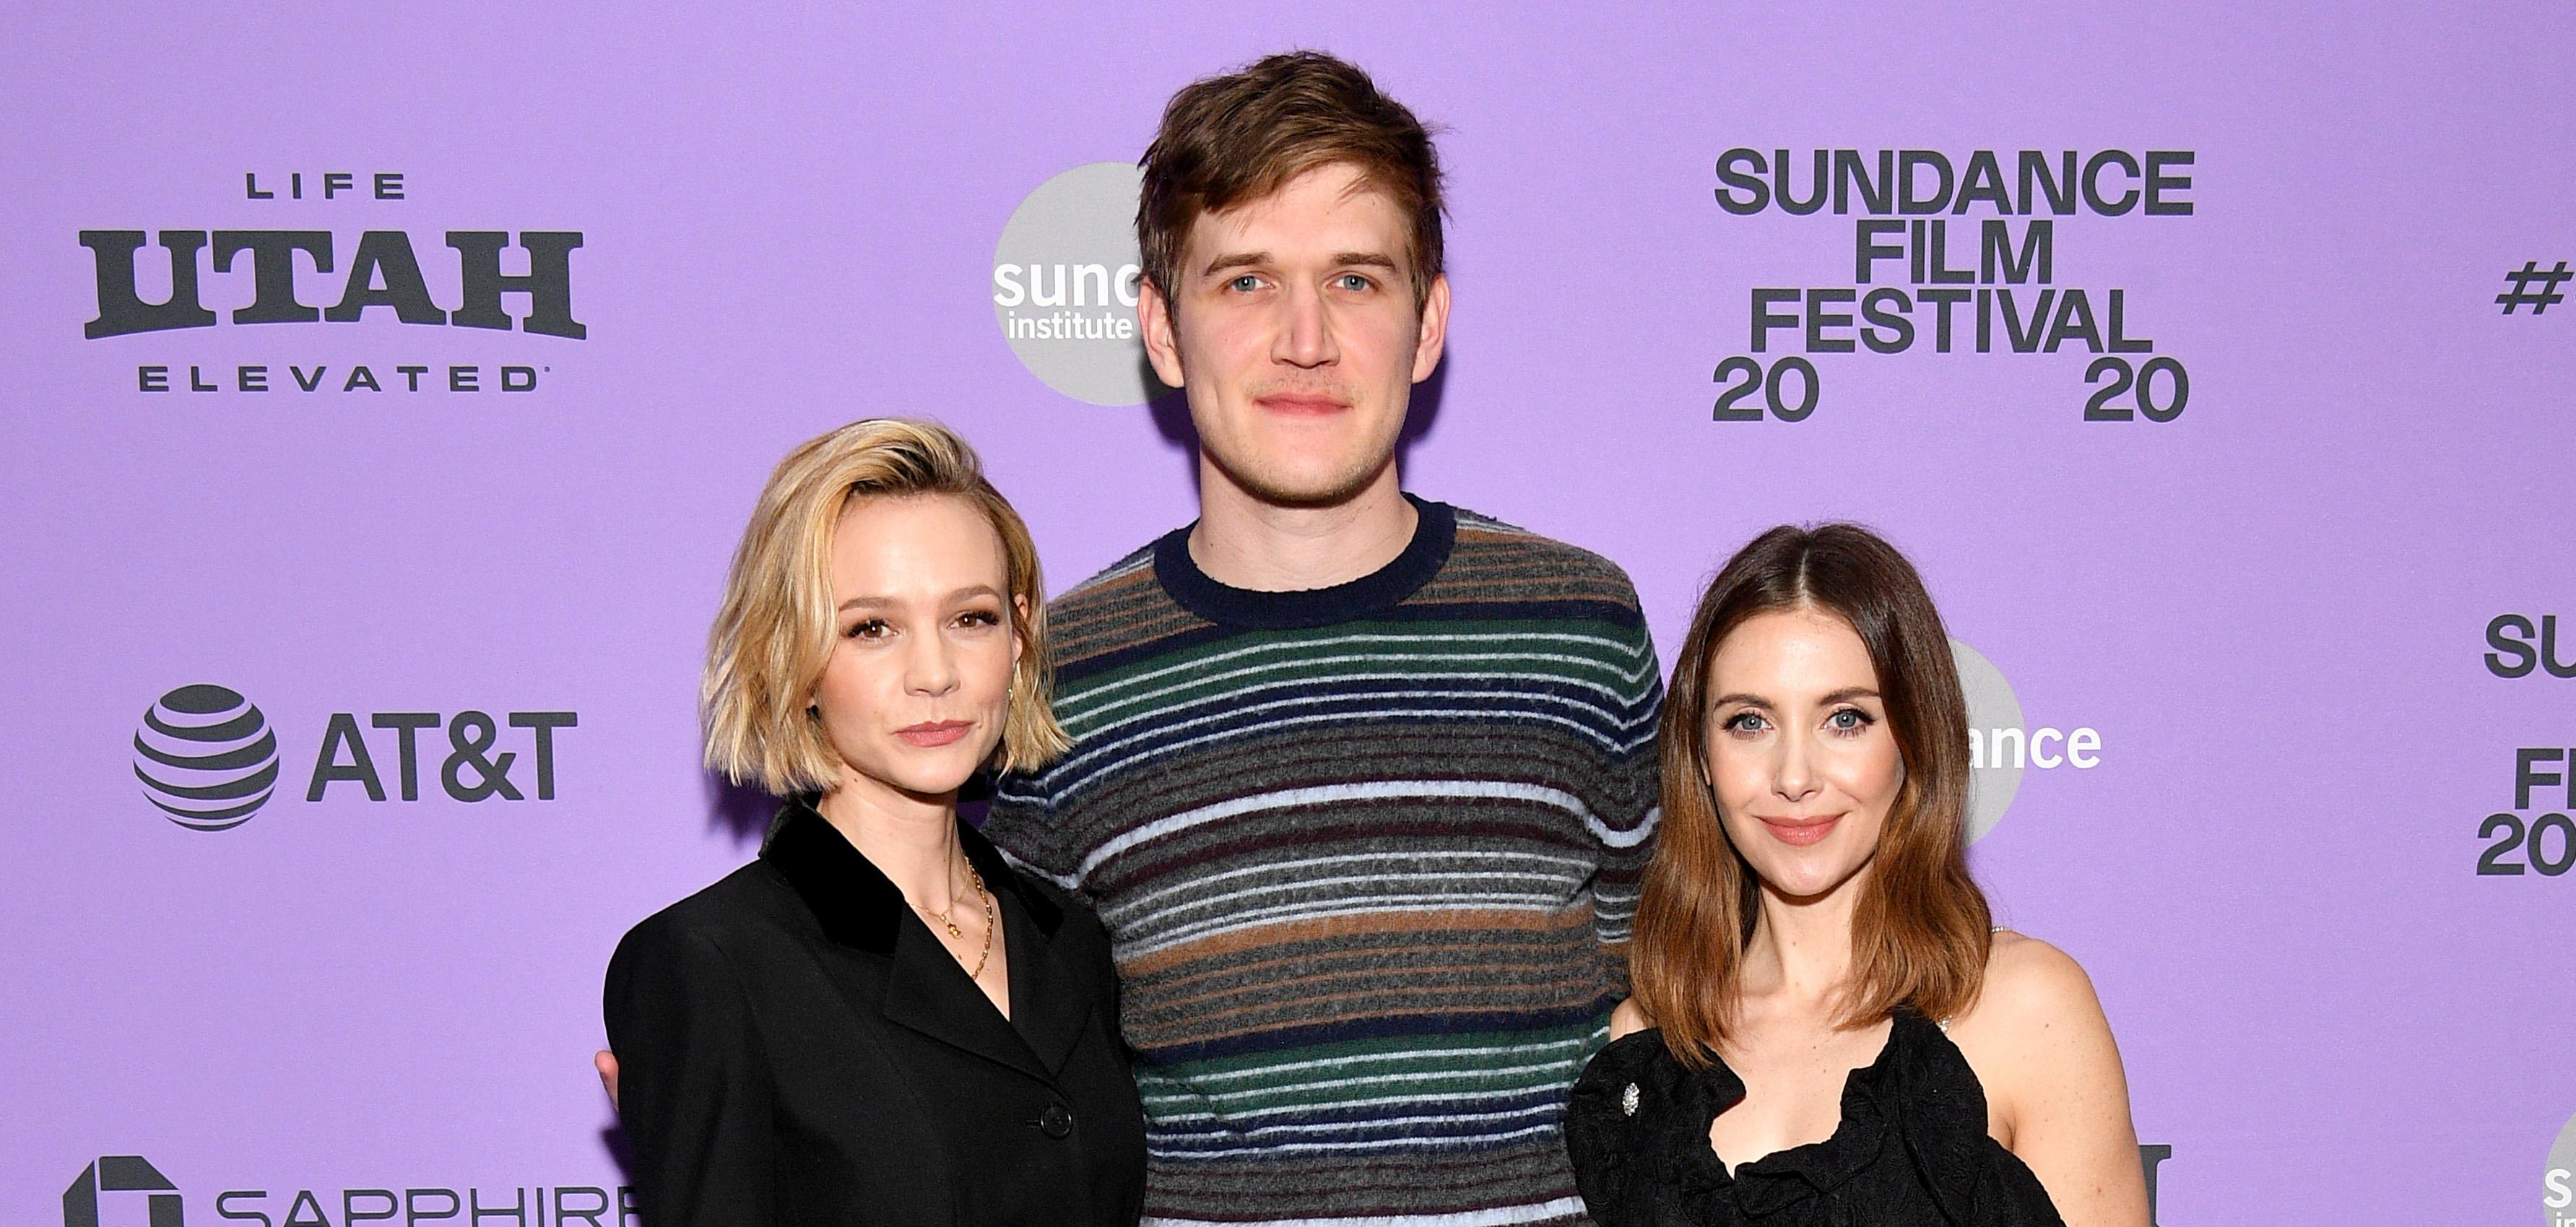 Bo Burnham with co-stars Carey Mulligan and Alison Brie